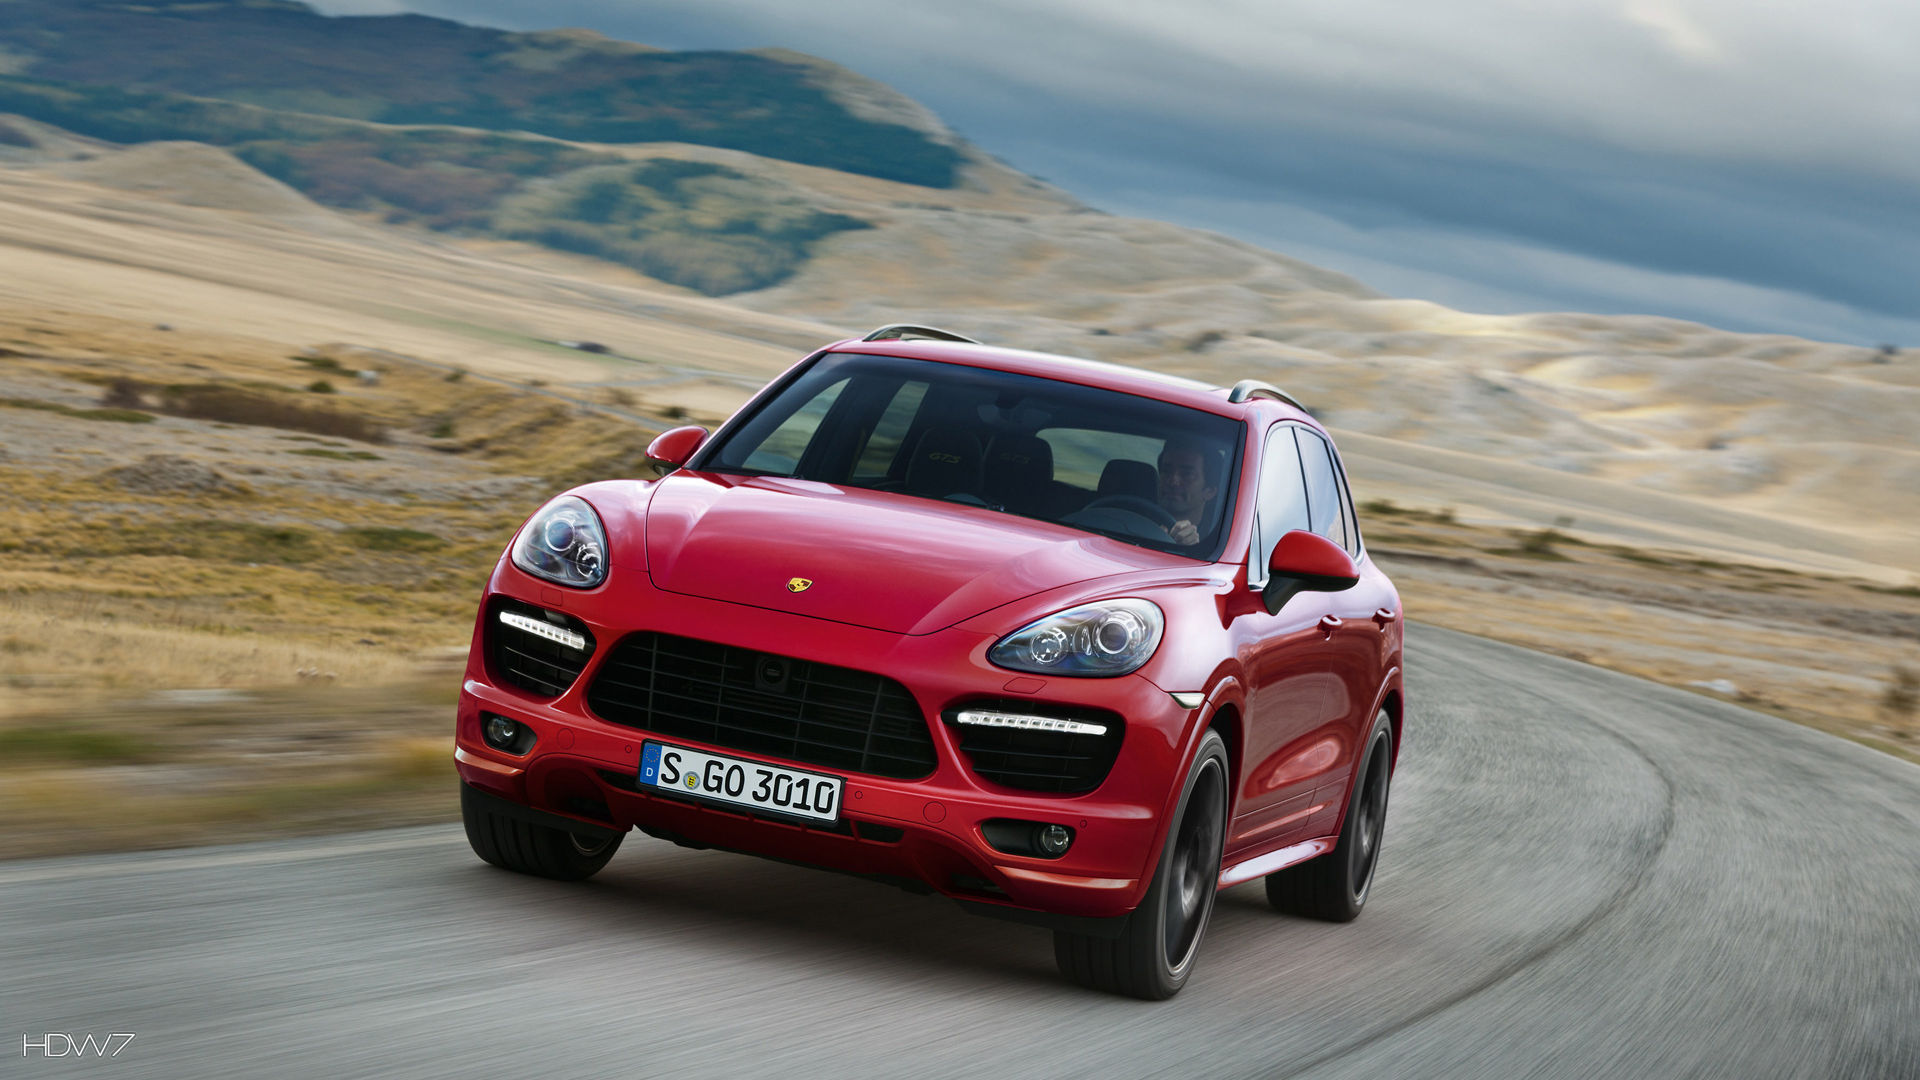 porsche cayenne gts 2012 car hd wallpaper